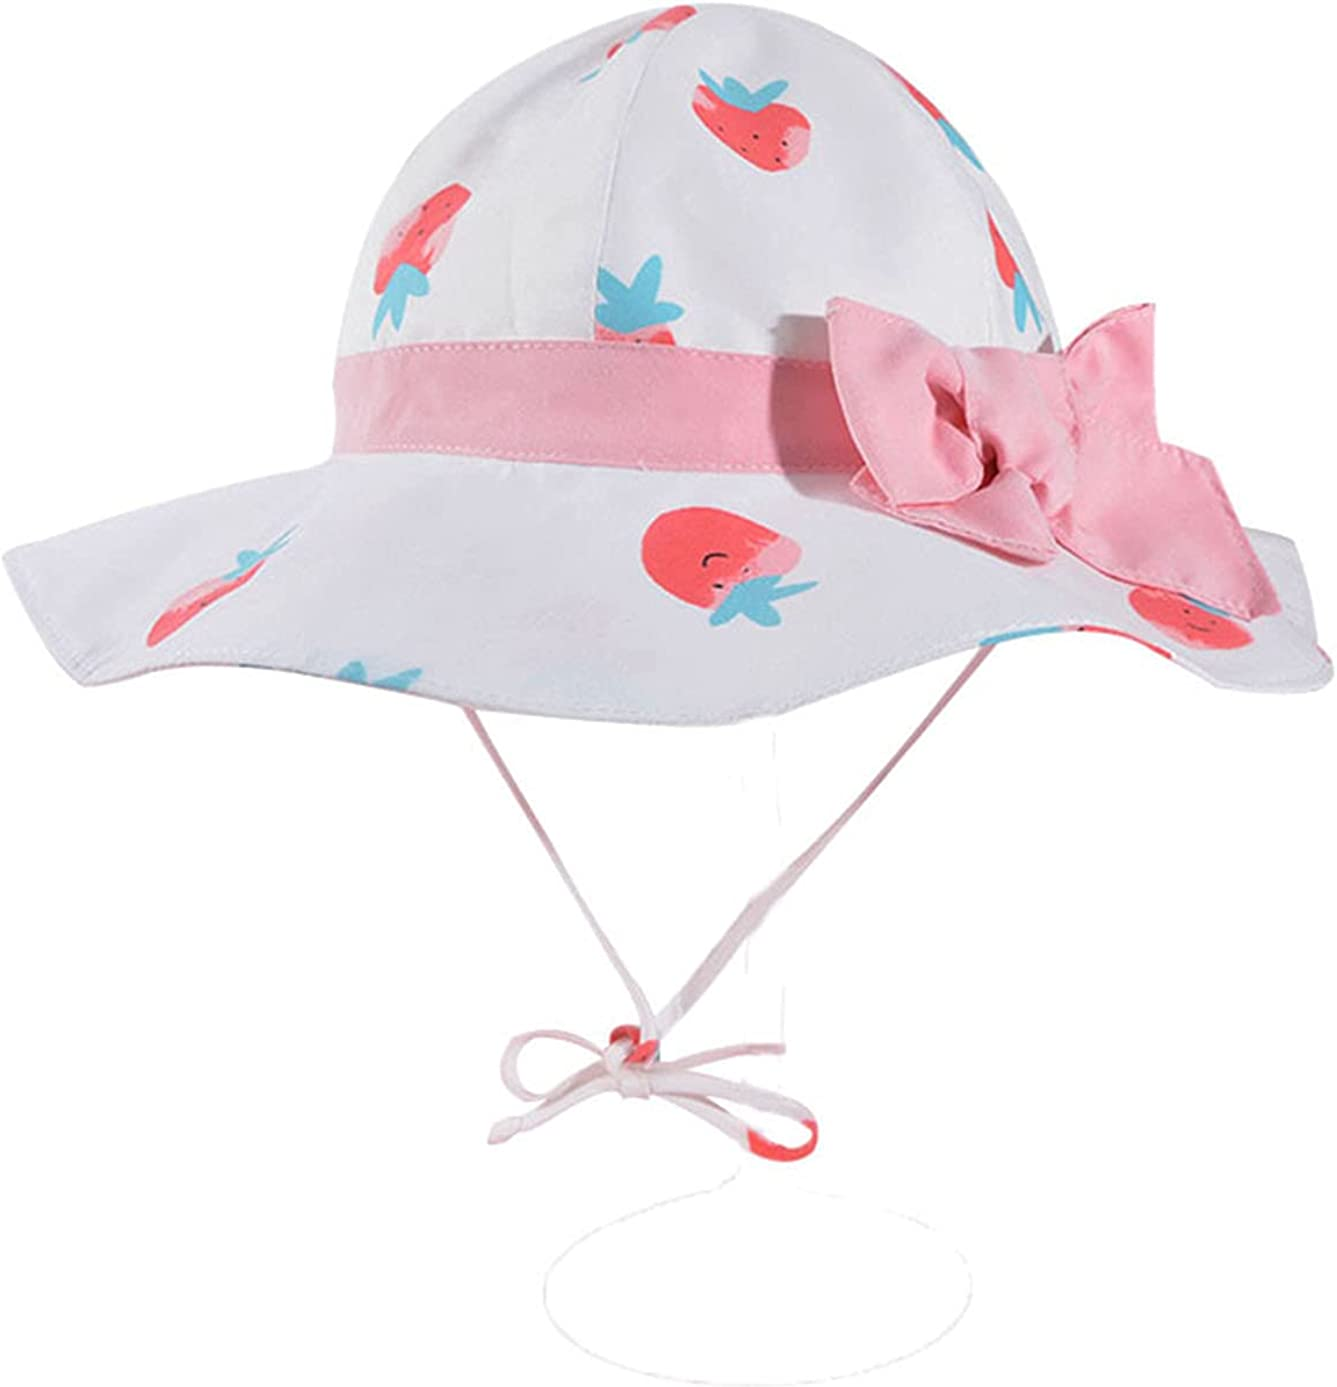 Baby Girl Sun Hat with UPF 50+ Outdoor Adjustable Summer Beach Hat Hats Sun Protection Hats Toddler Infant Sun Hat